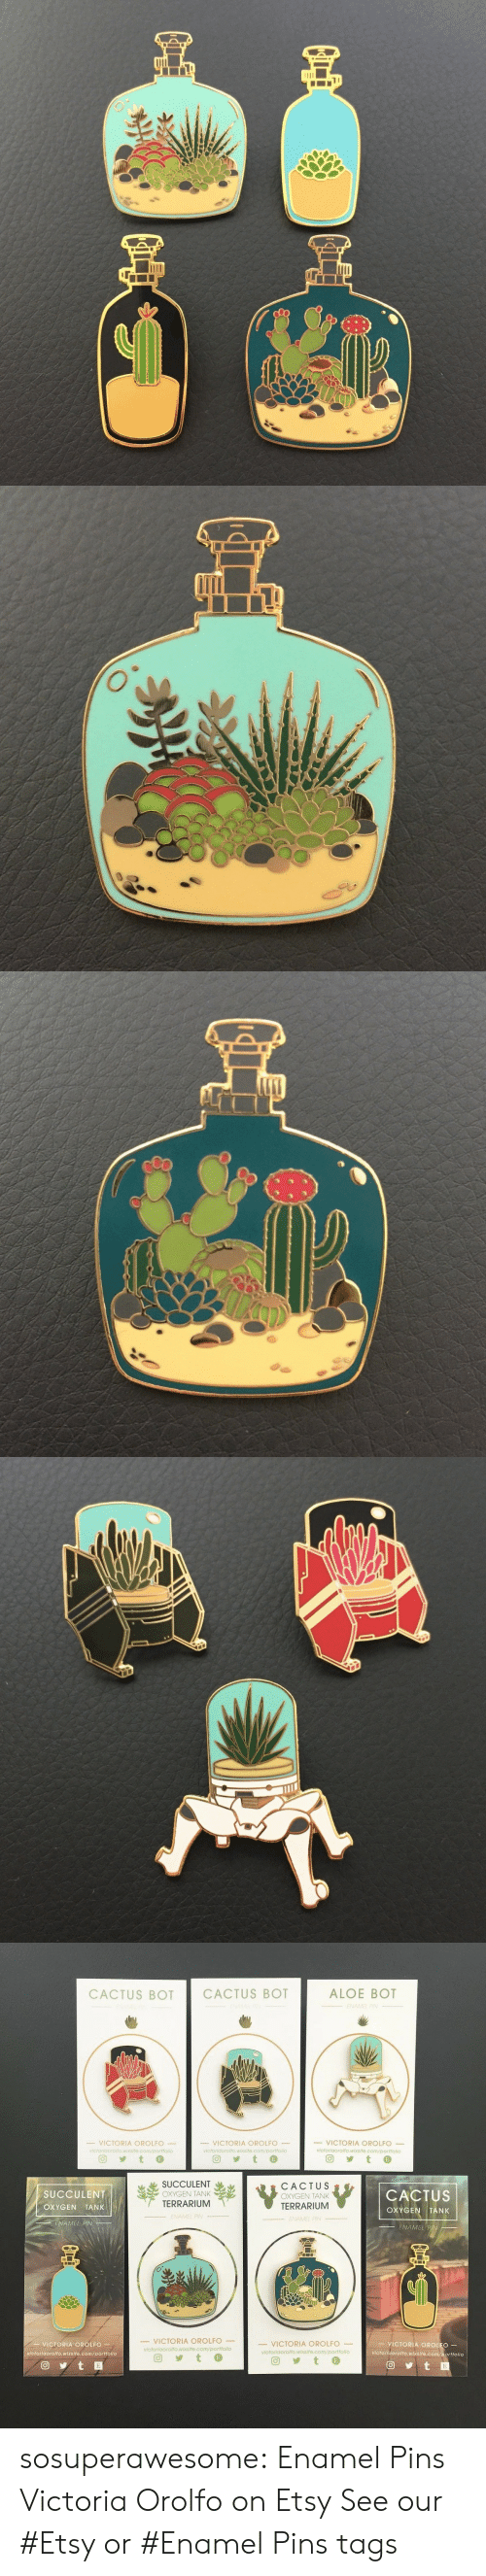 pins: CACTUS BOT CACTUS BOT  ALOE BOT  VICTORIA OROLFO  VICTORIA OROLFO  VICTORIA OROLFO  回yt  SUCCULENT  OXYGEN TANK  TERRARIUM  CACTUS  OXYGEN TANK  TERRARIUM  SUCCULENT  OXYGEN TANK  CACTUS  OXÝGEN TANK  ENAMEL P  VICTORIA OROLFO-  一VICTORIA OROLFO  ーVICTORIA OROLEO  victorlaorolto. wixsite.com/portfolio  -VICTORIA OROLFO-  victoriaorolfo.wixsite.com/portfolio  victoriaorolfo, wixsite.com/portfolio  victoriaorolfo wixsite.com/portfolio  回步to sosuperawesome: Enamel Pins  Victoria Orolfo on Etsy  See our #Etsy or #Enamel Pins tags